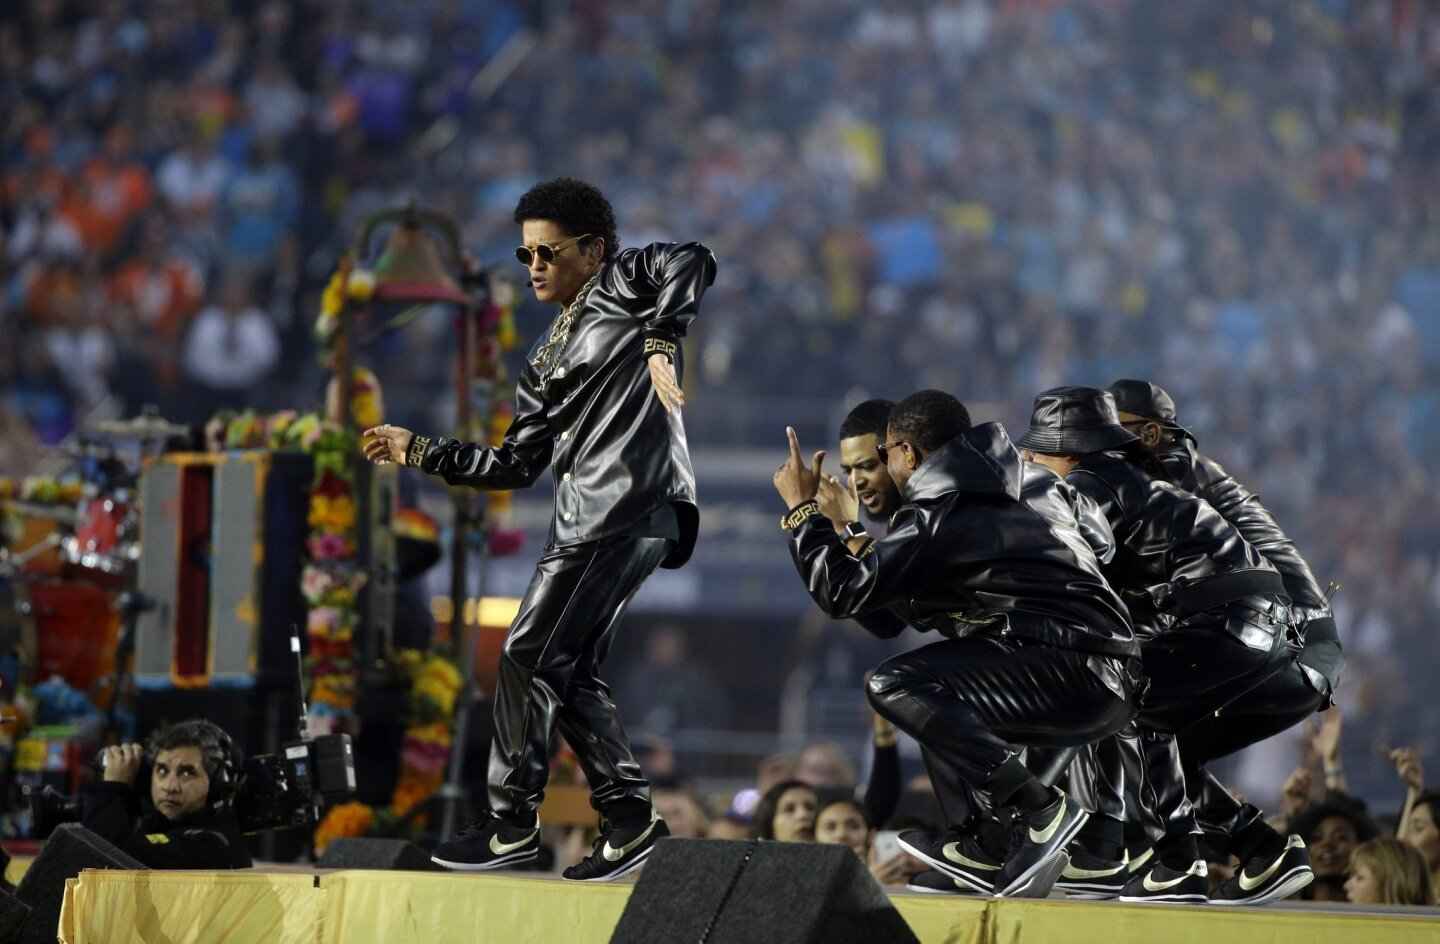 Bruno Mars, far left, performs during halftime of the NFL Super Bowl 50 football game Sunday, Feb. 7, 2016, in Santa Clara, Calif. (AP Photo/Julie Jacobson)